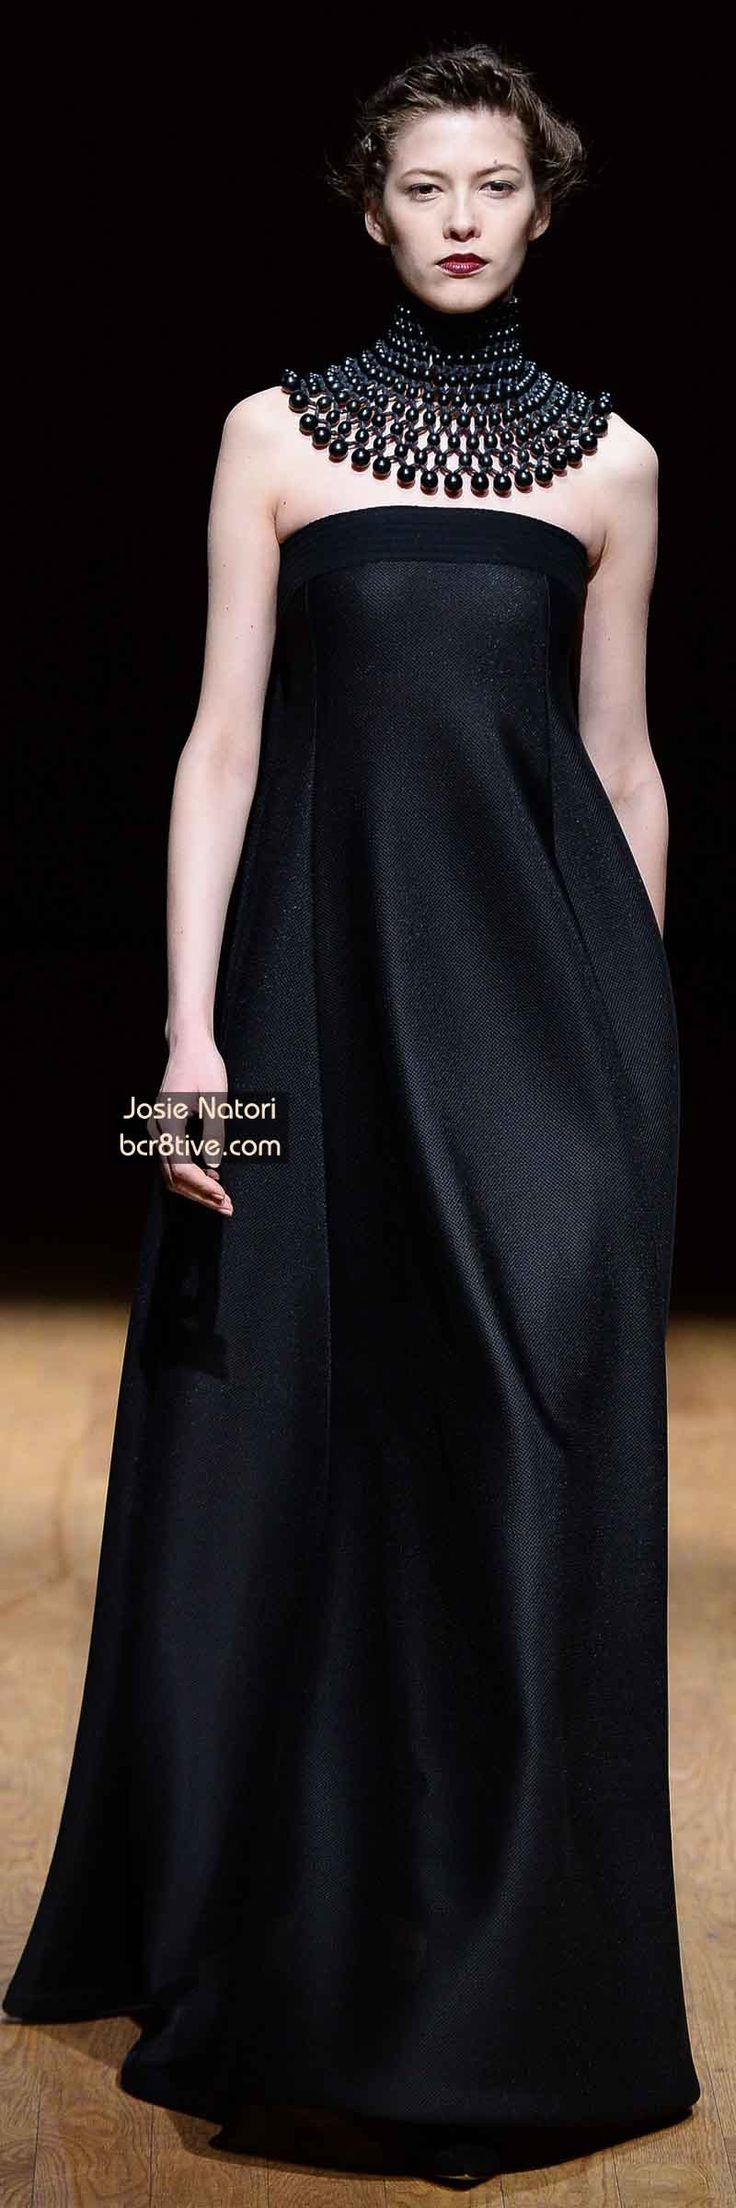 The Best Gowns of Fall 2014 Fashion Week International - Page 2 of 10